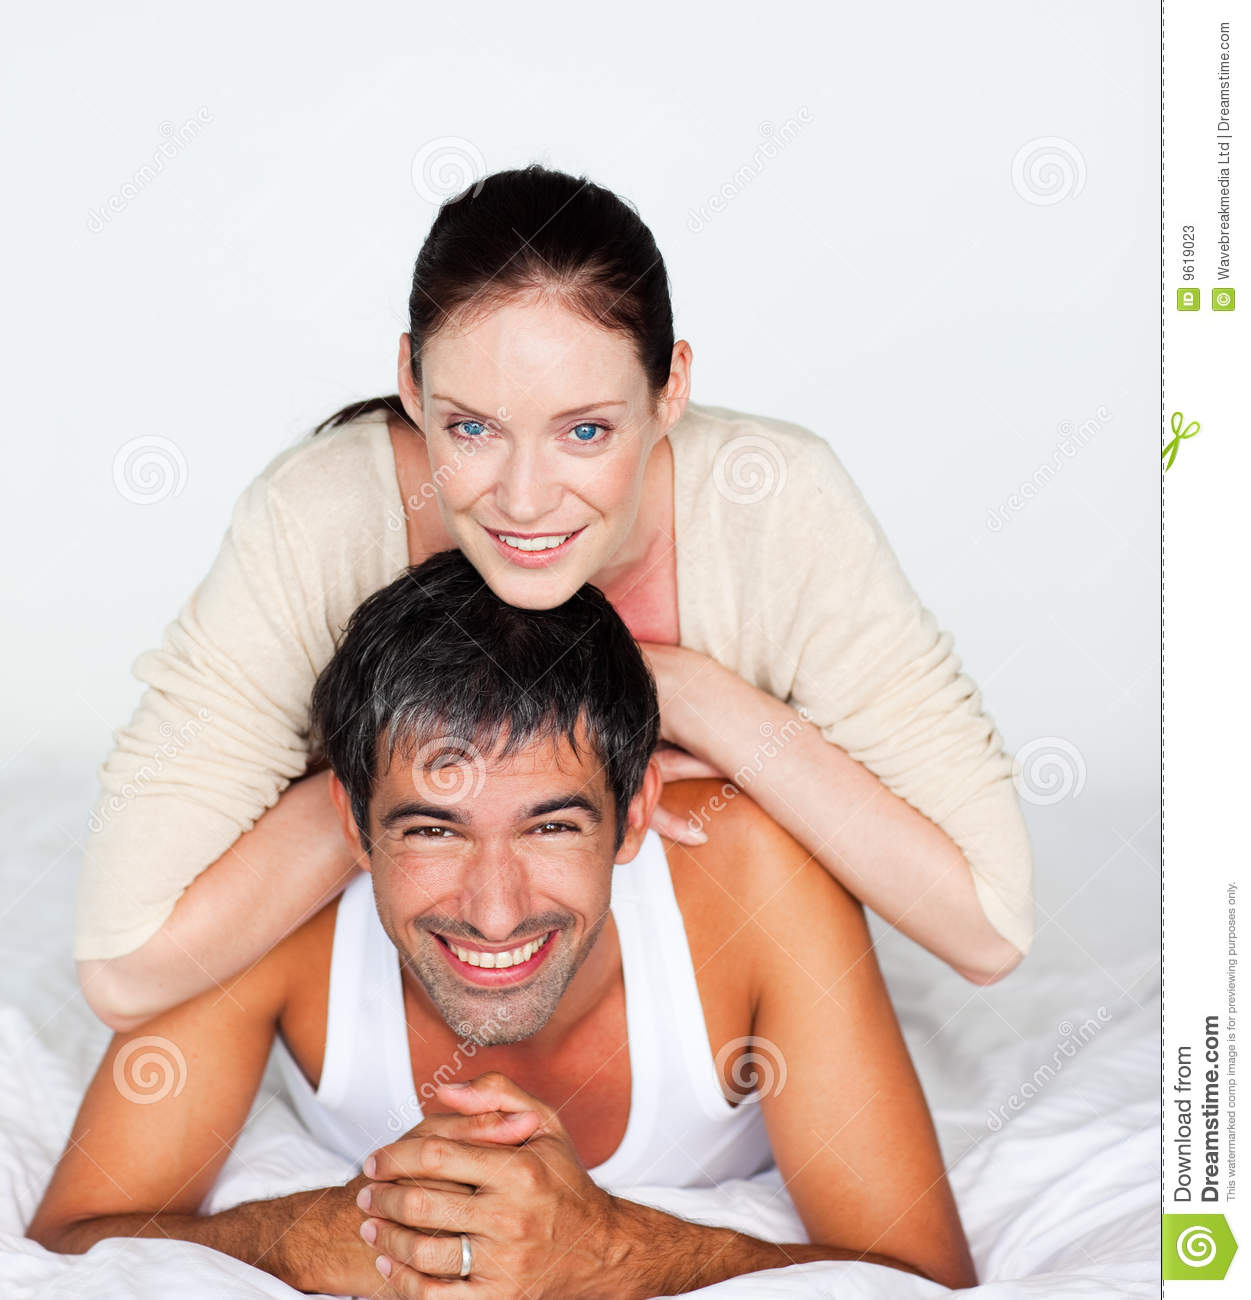 Victorias Austin For Fun Couple Looking